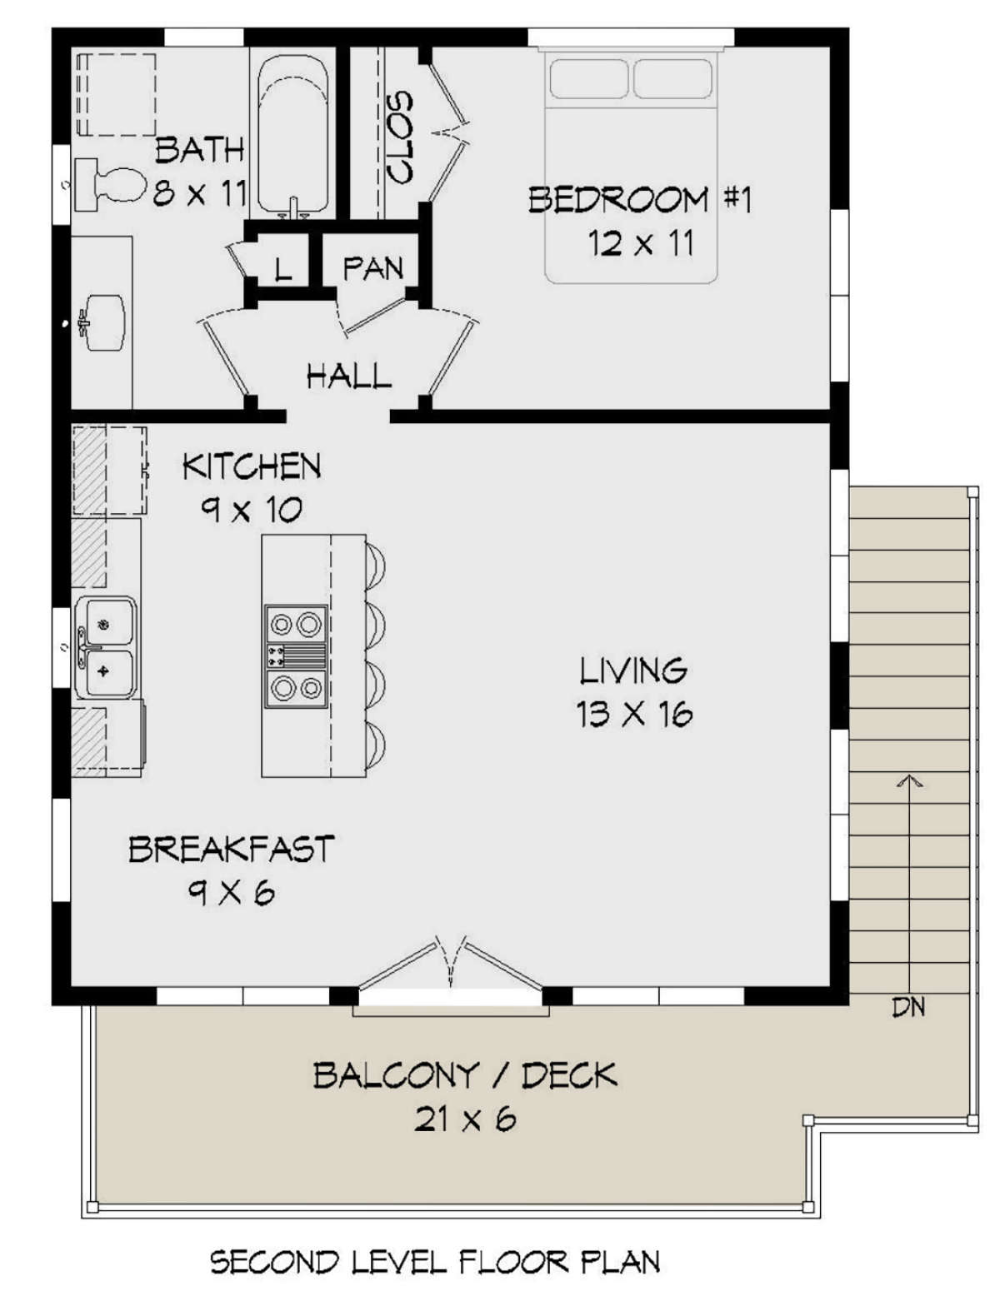 House Plan 940 00198 Modern Plan 650 Square Feet 1 Bedroom 1 Bathroom One Bedroom House Plans One Bedroom House Modern Style House Plans